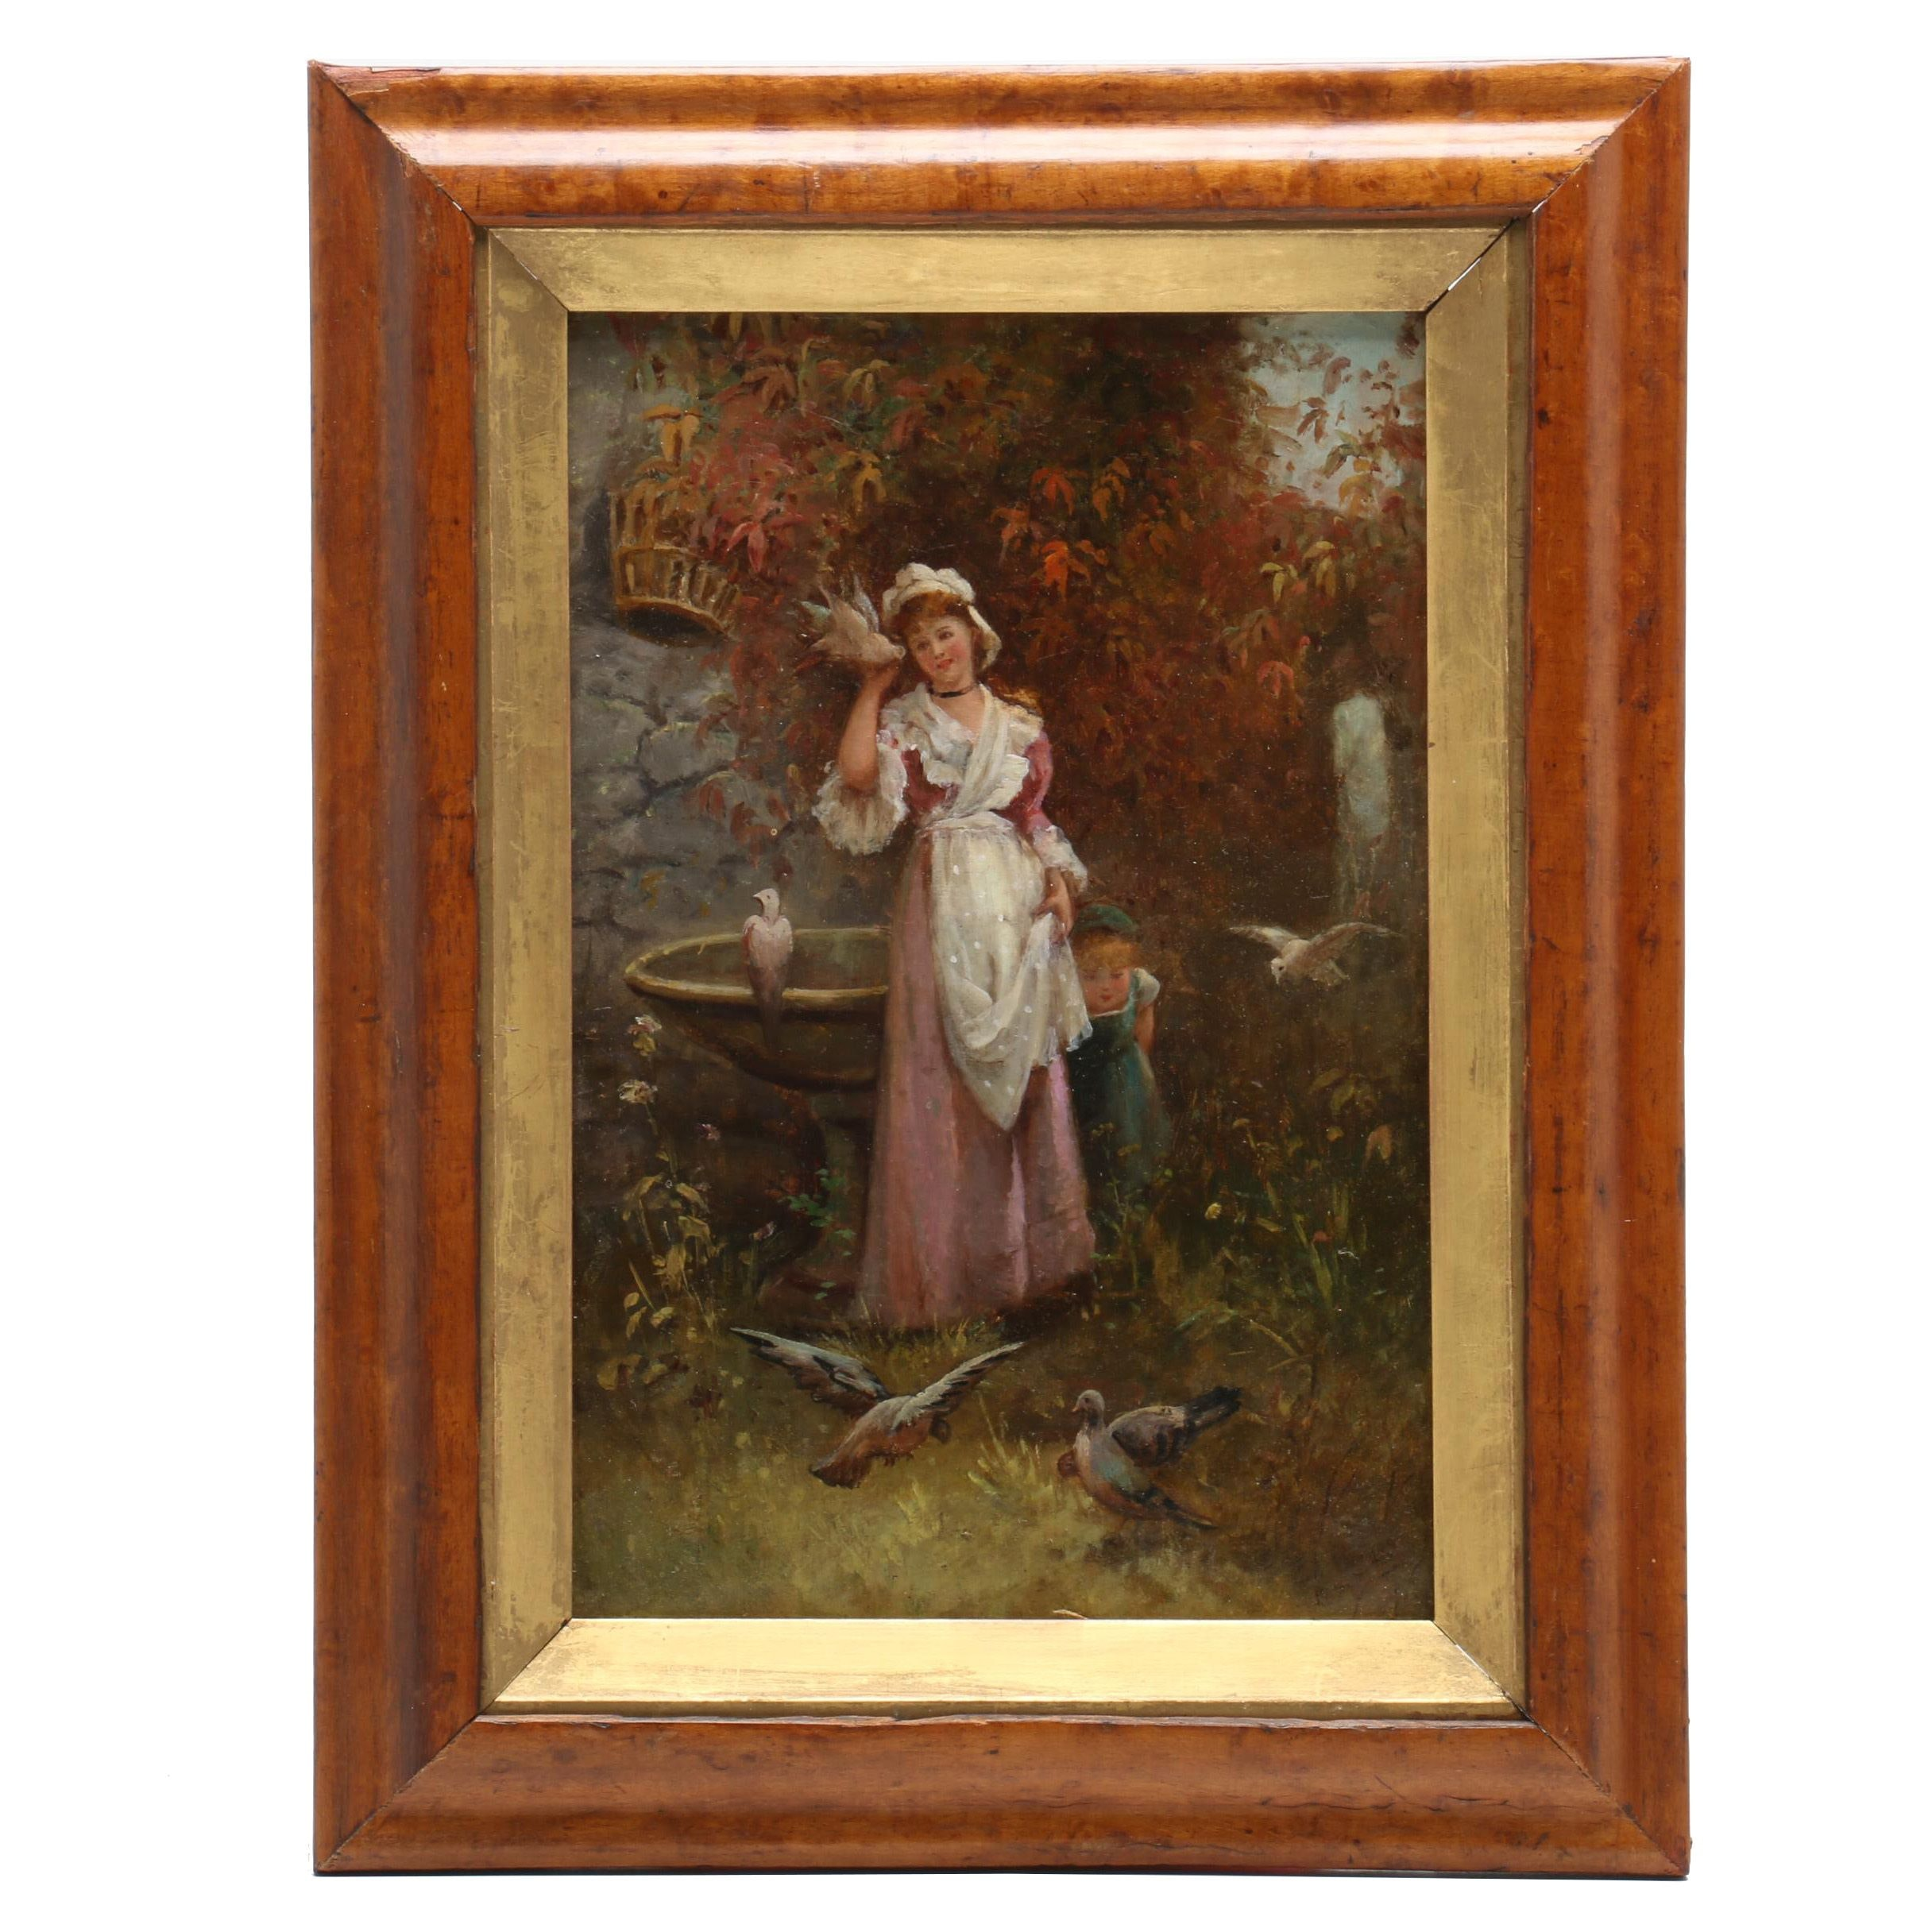 Ed Burges Oil Painting of Woman and Child with Doves